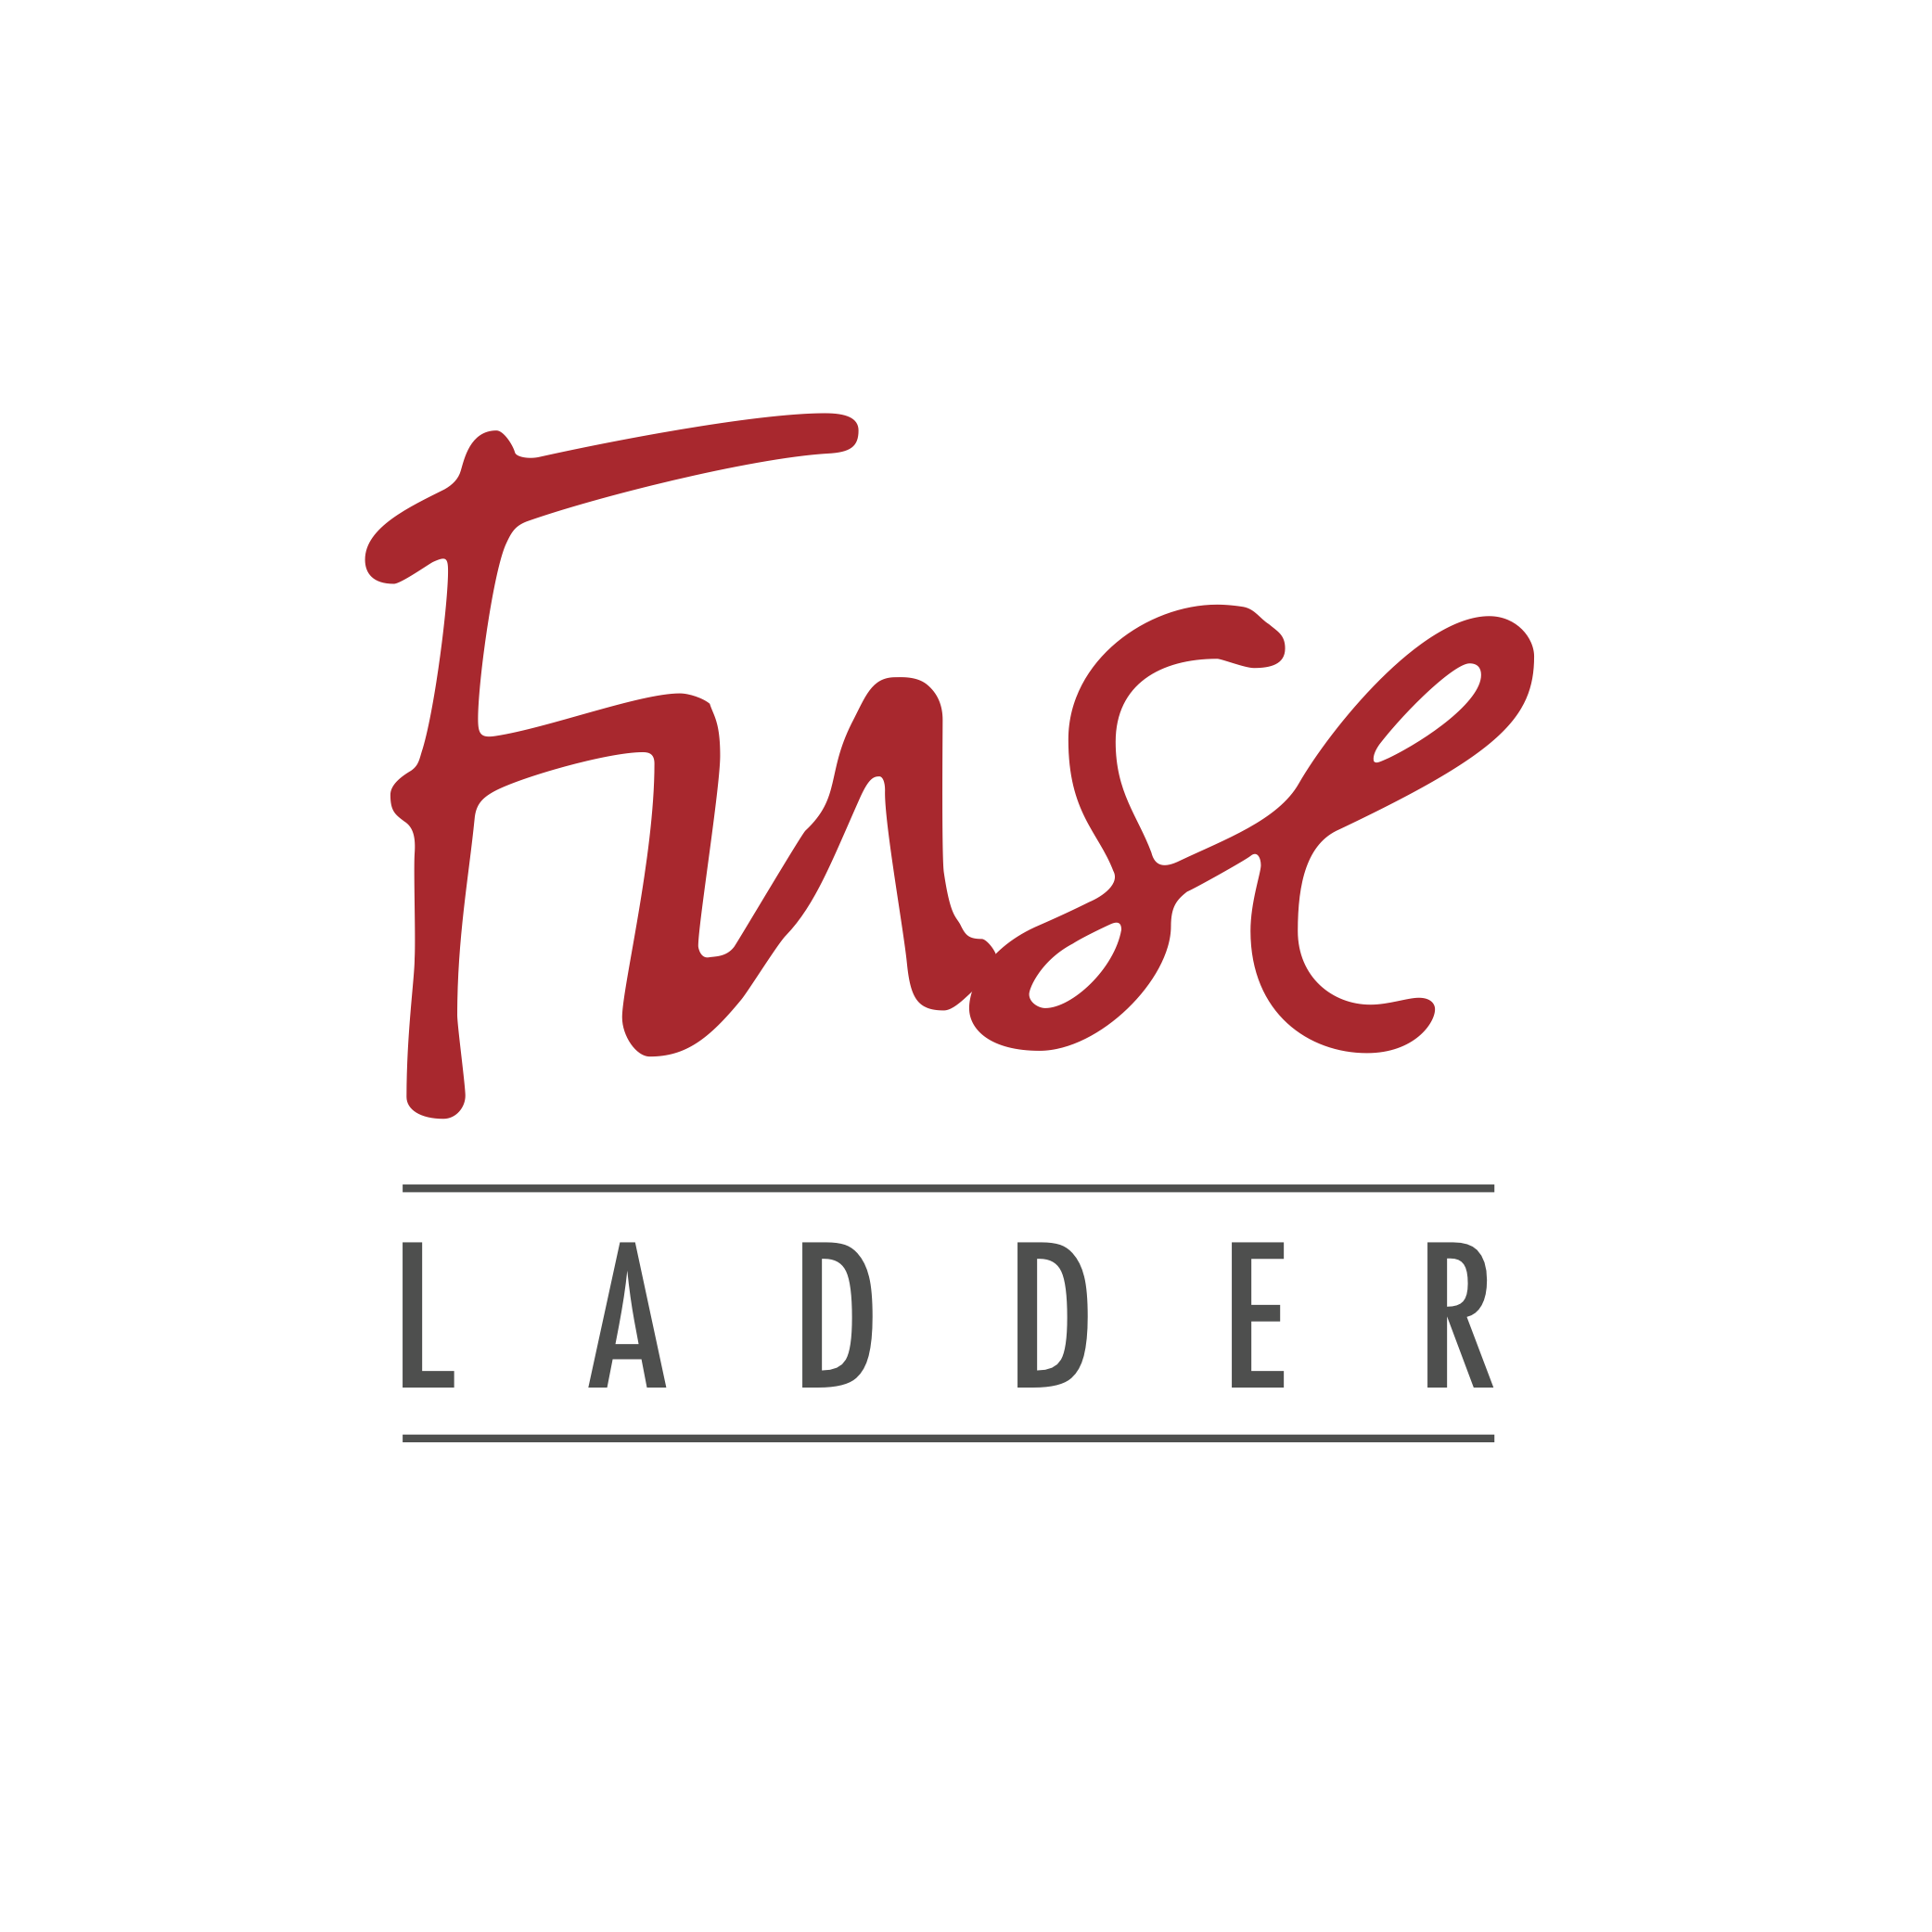 - The Fuse Ladder was created by NeuroRehab Movement co-founder Mariska Breland. It is the most versatile strength, flexibility, and balance training apparatus on the market today.